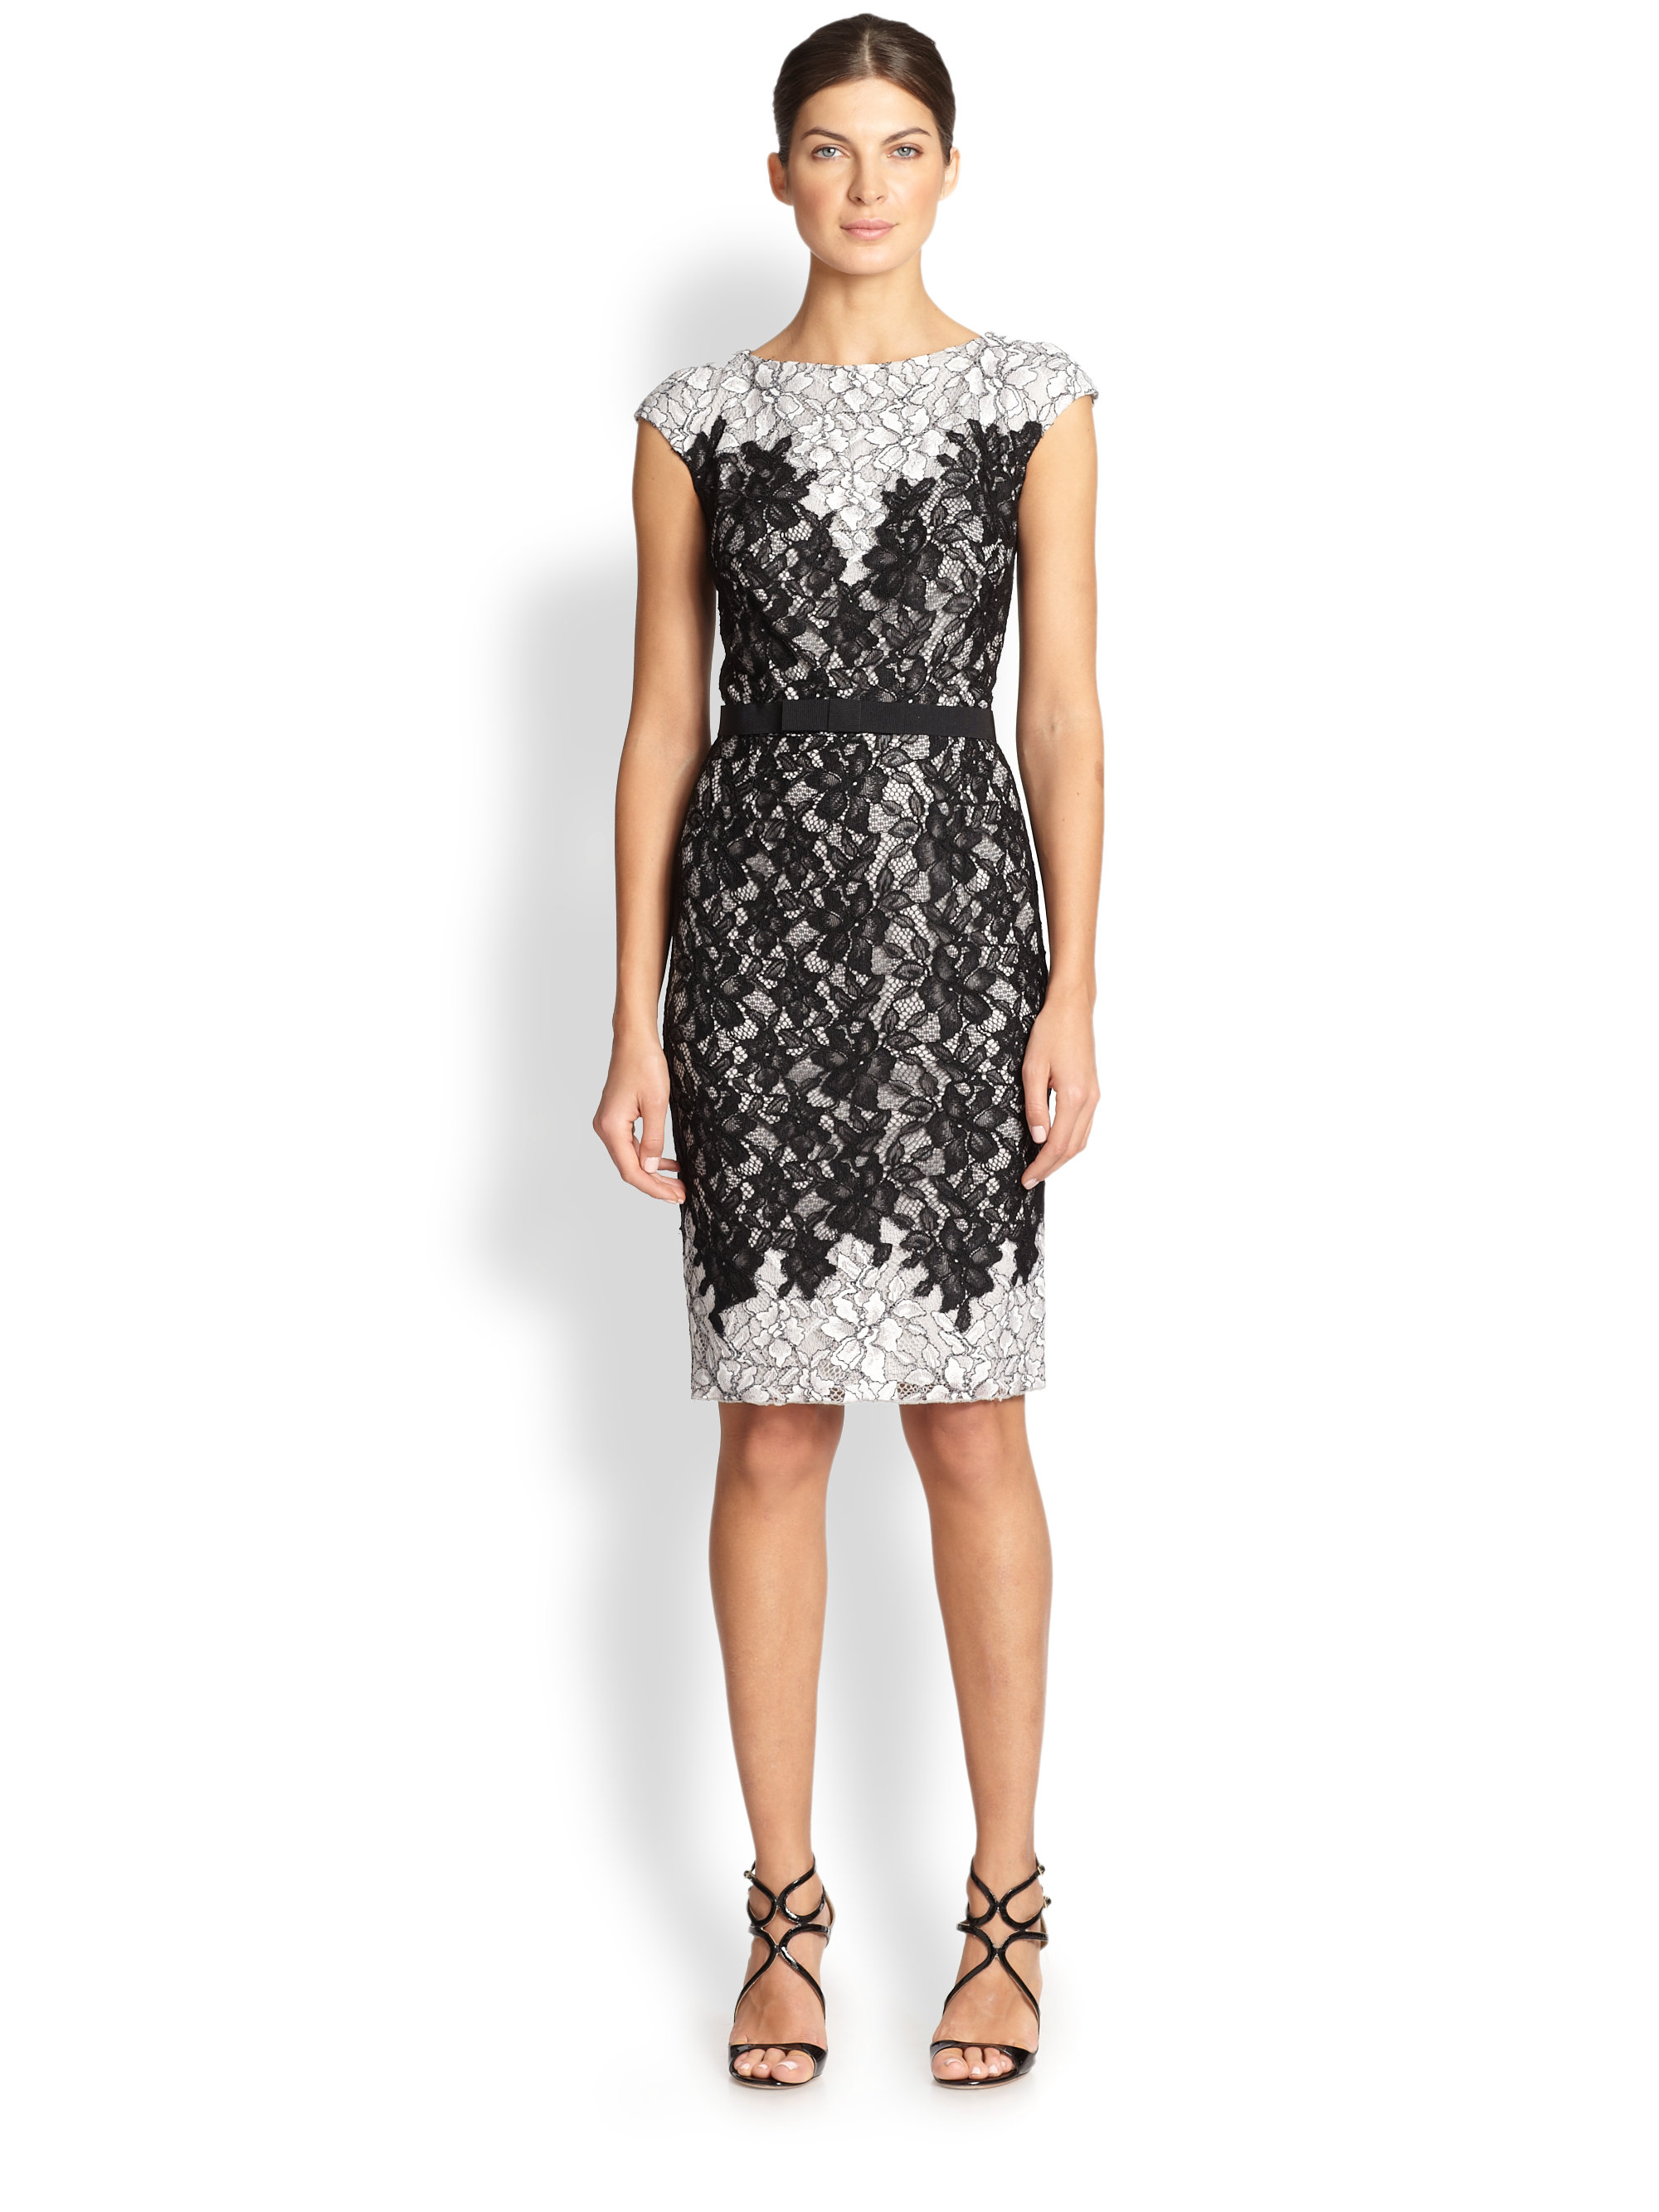 Tadashi shoji Contrast-lace Cocktail Dress in Black | Lyst